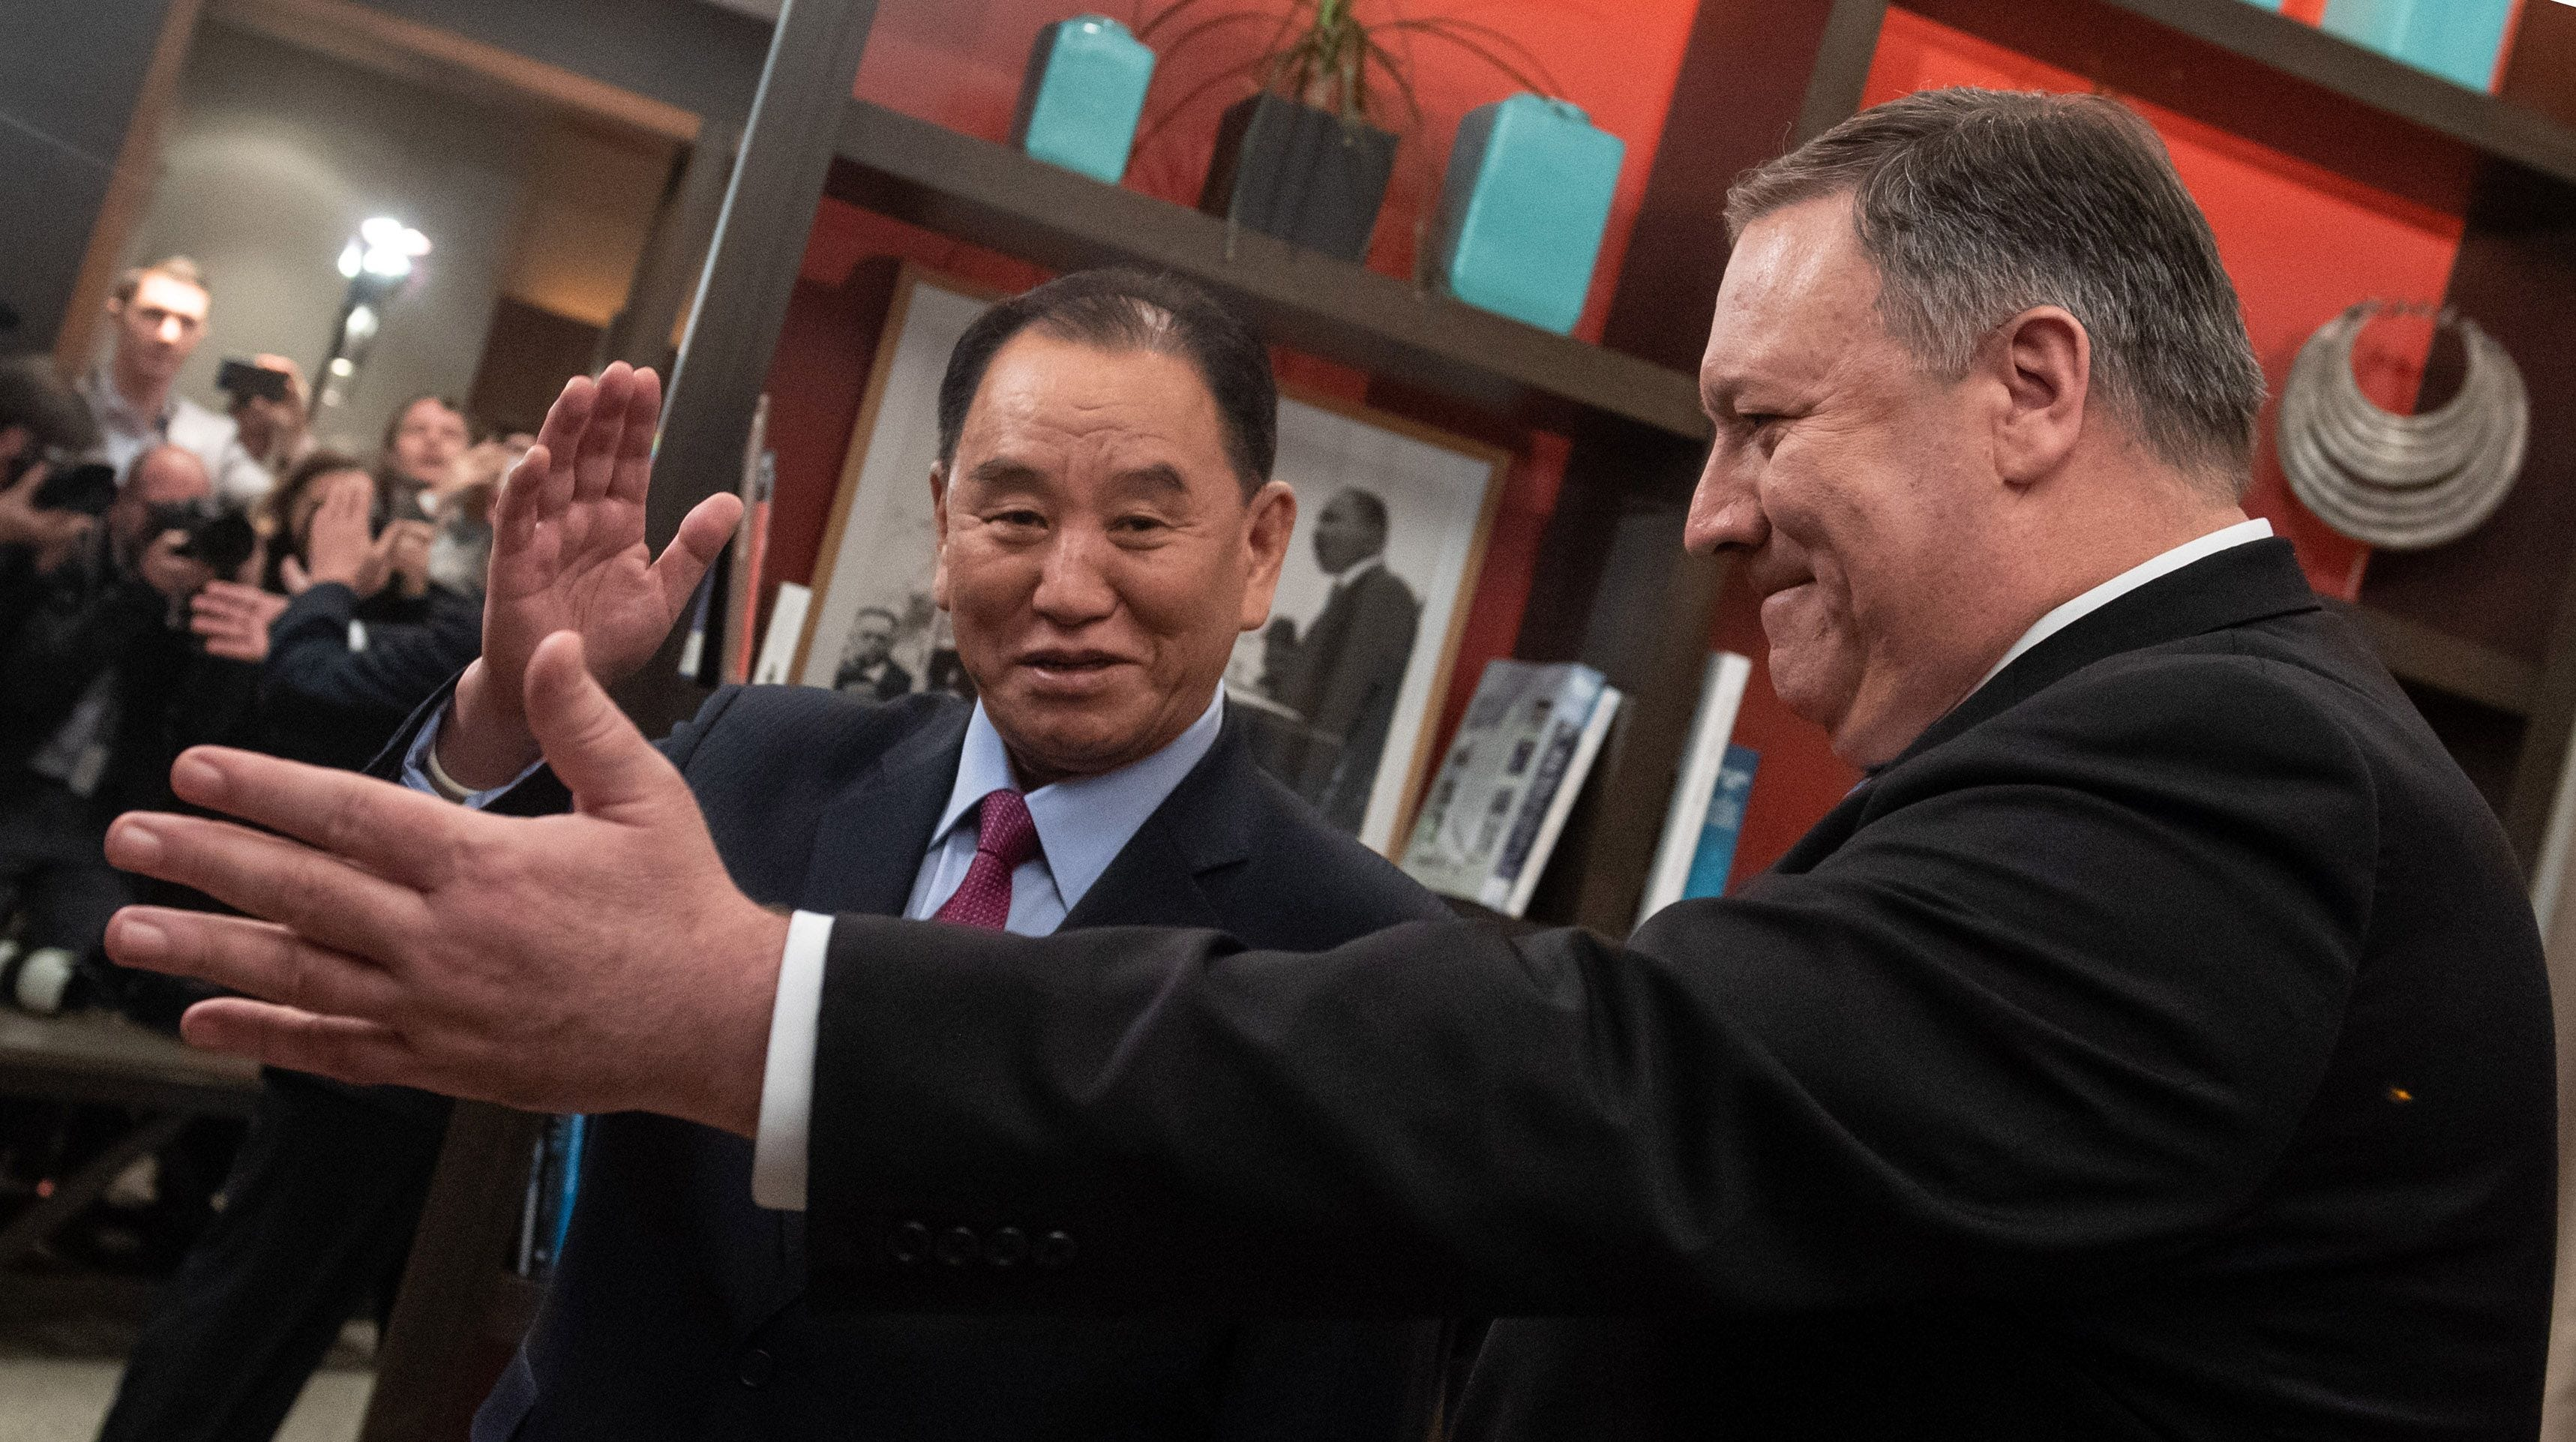 US Secretary of State Mike Pompeo welcomes North Korean Vice-Chairman Kim Yong Chol prior to a meeting in Washington, DC, January 18, 2019.